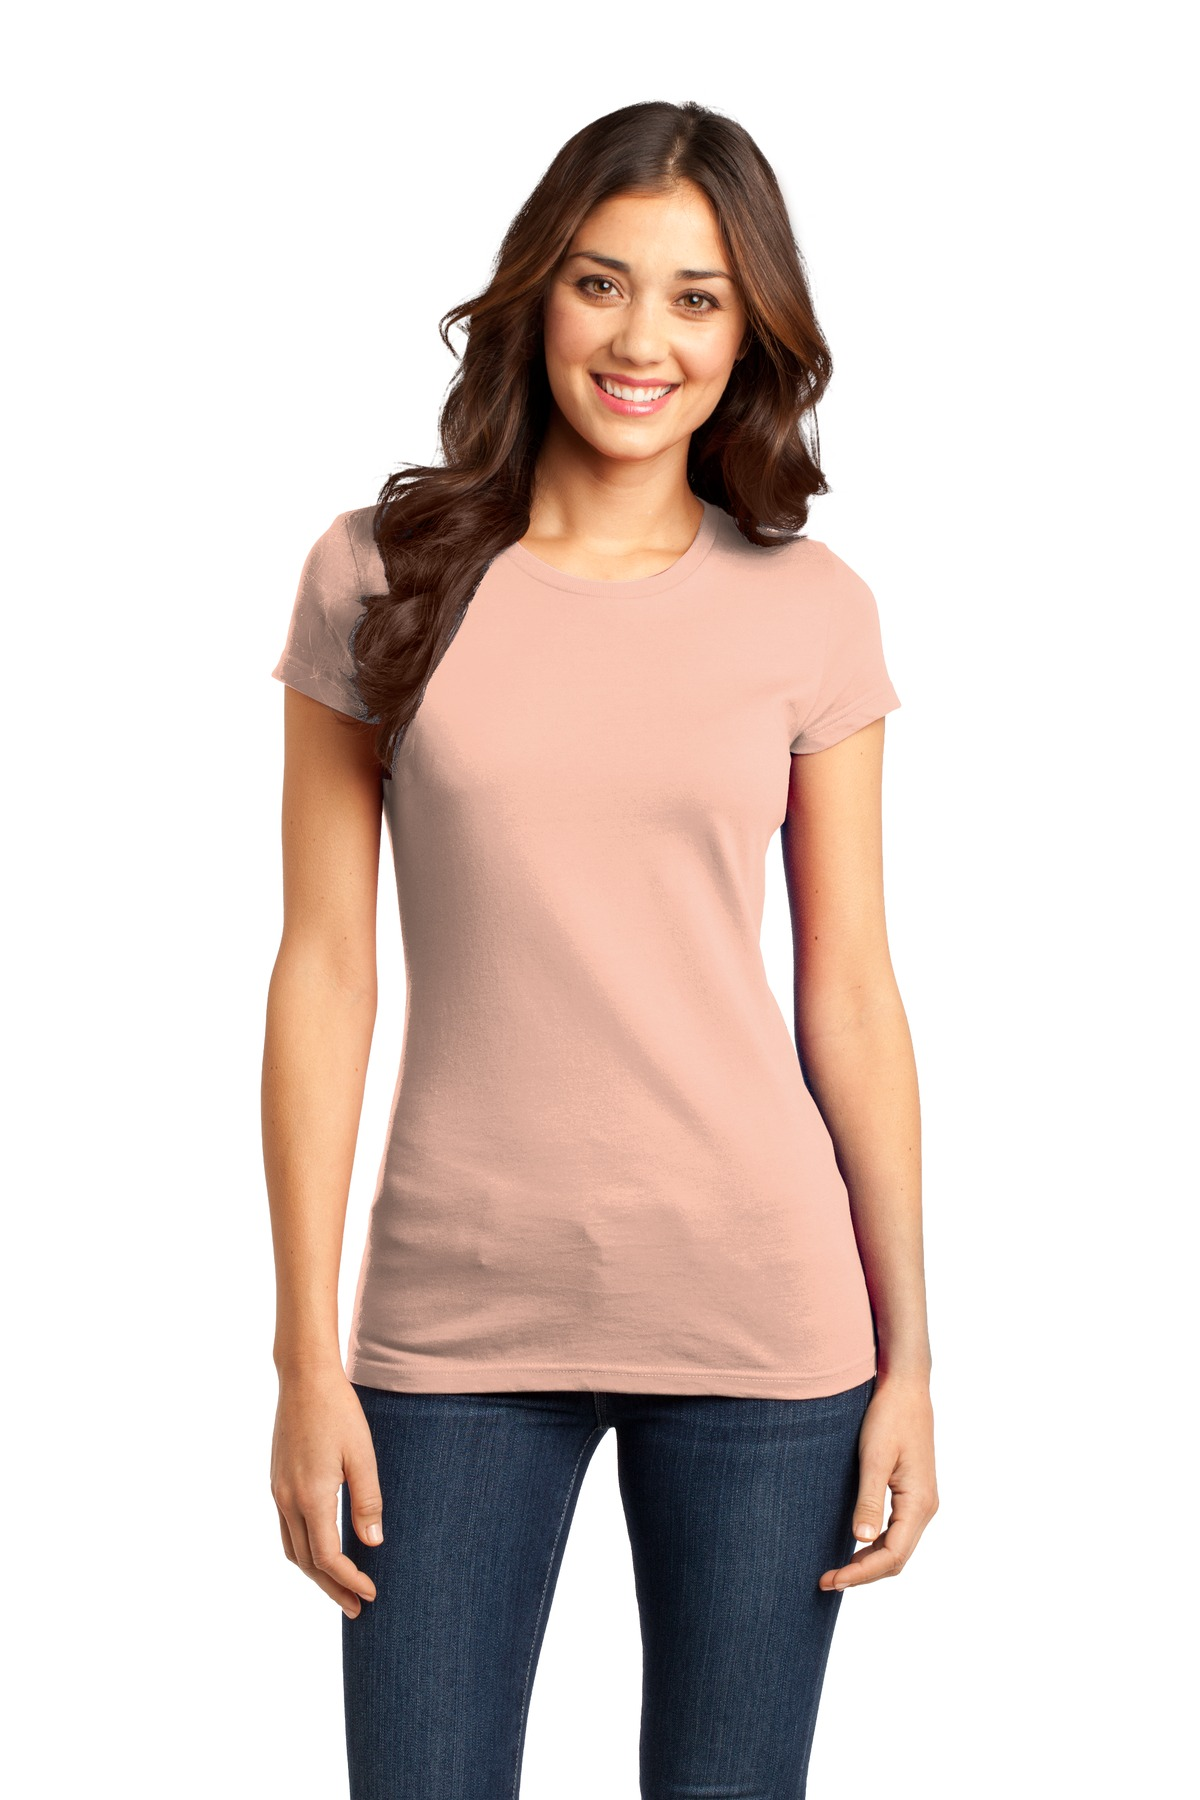 District ®  Women's Fitted Very Important Tee ® . DT6001 - Dusty Peach